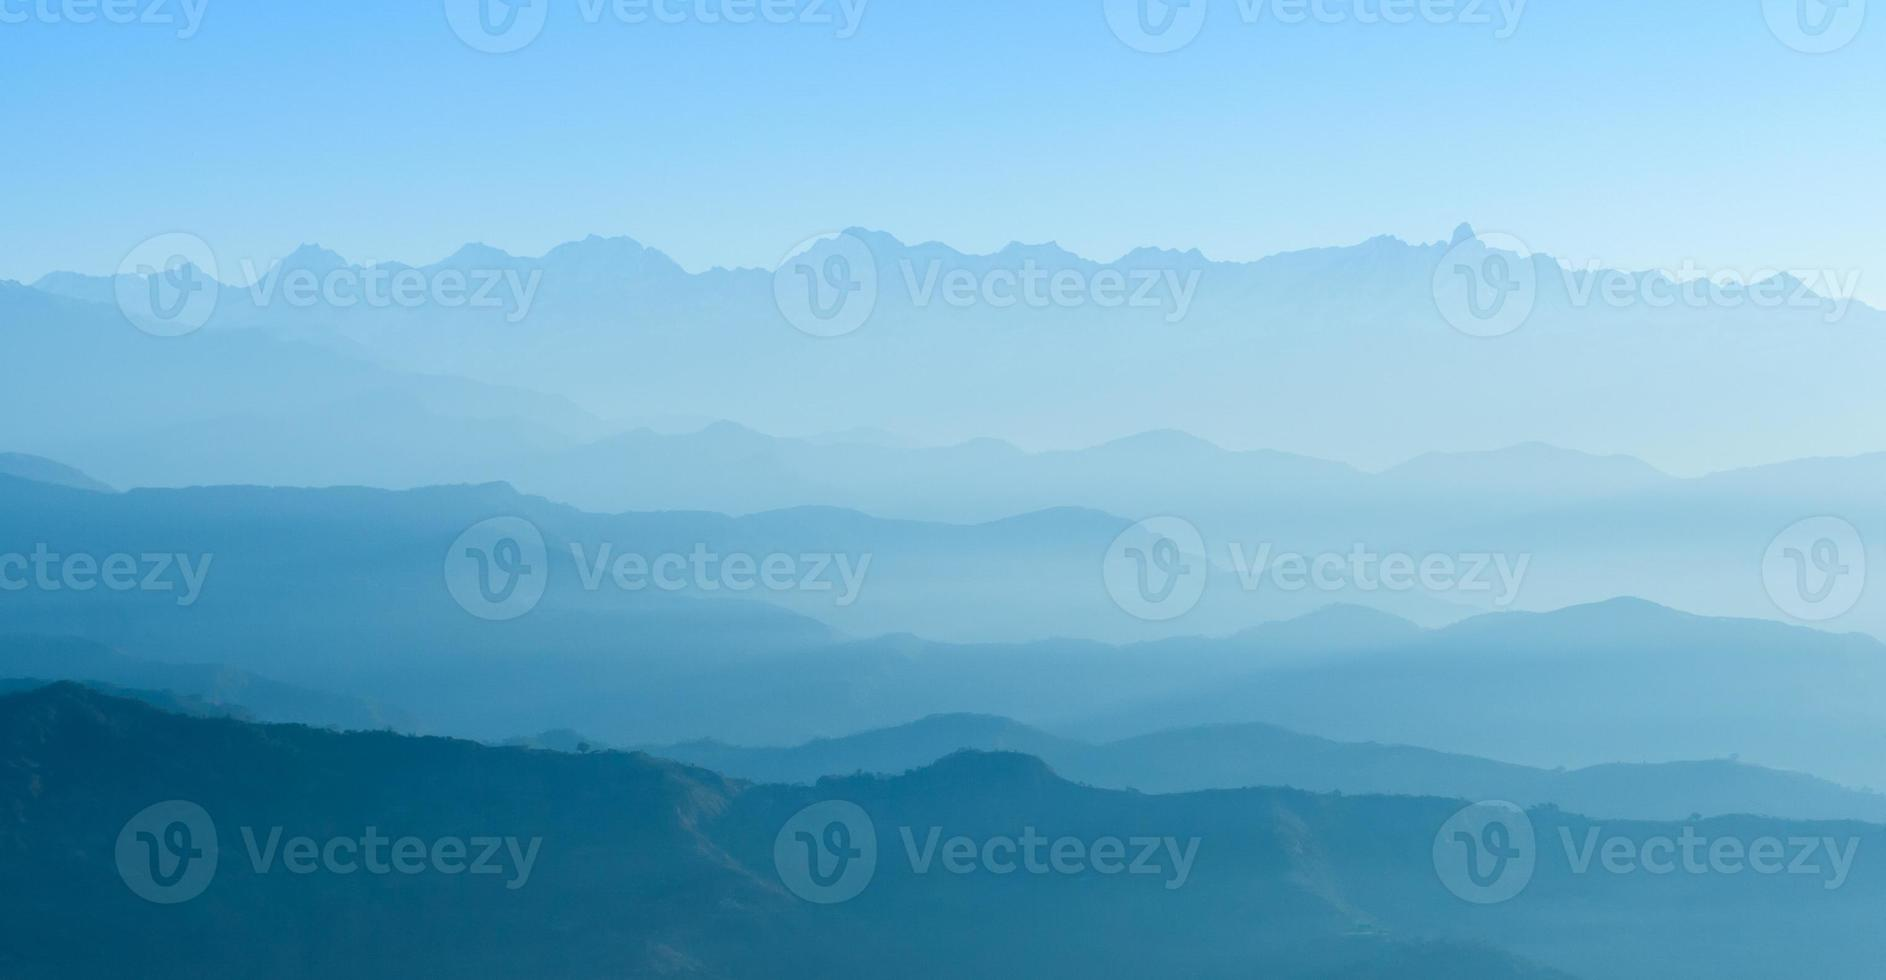 The layers of mountain photo